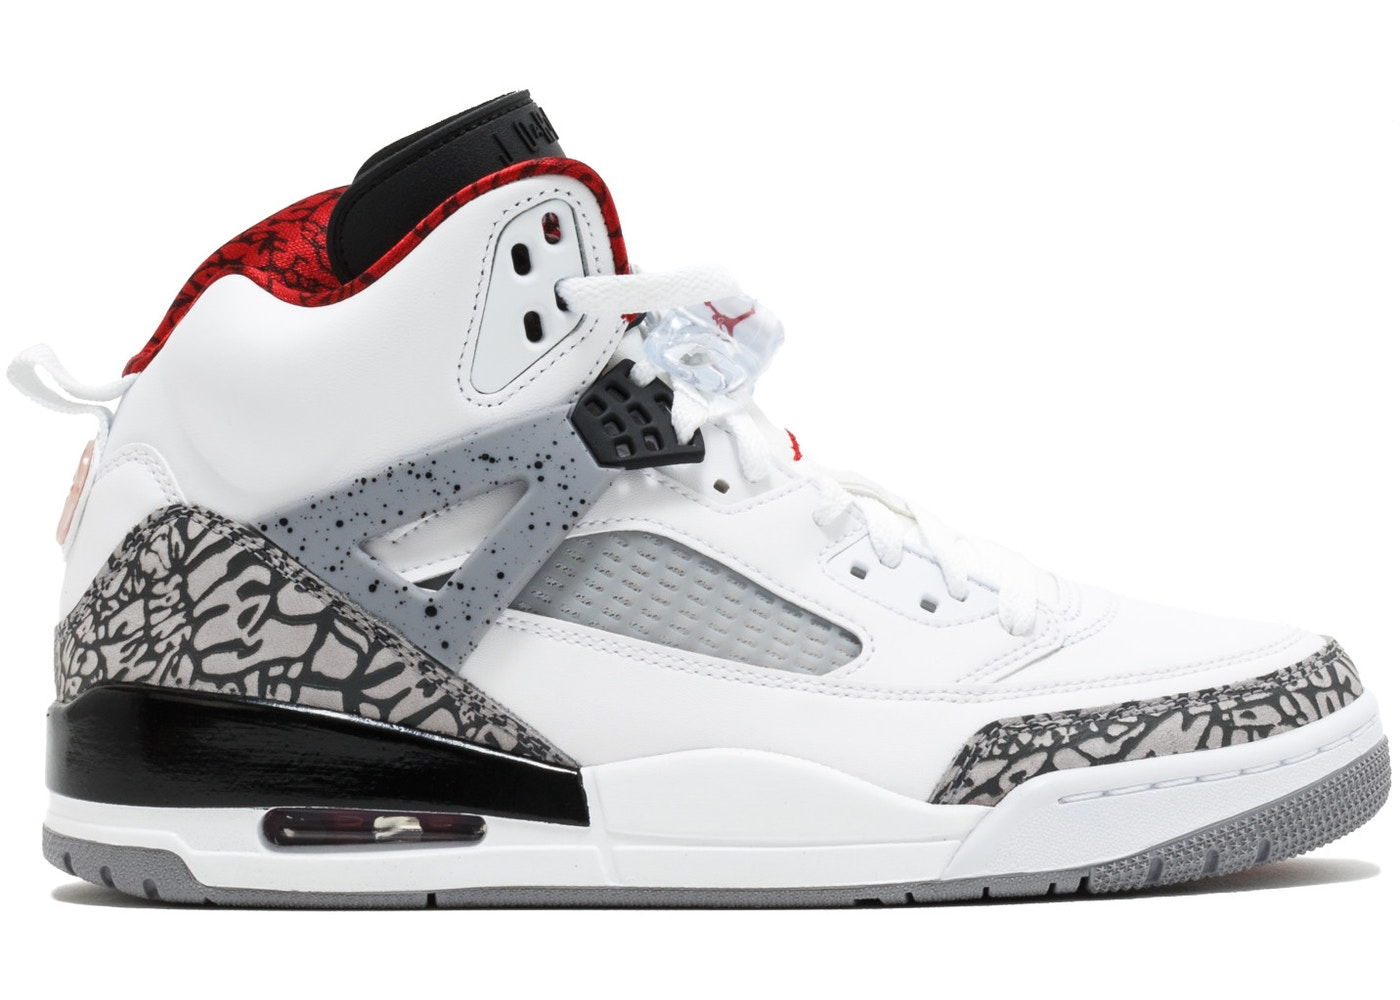 quality design 5903d 3b261 Air Jordan Spizike Shoes - Price Premium